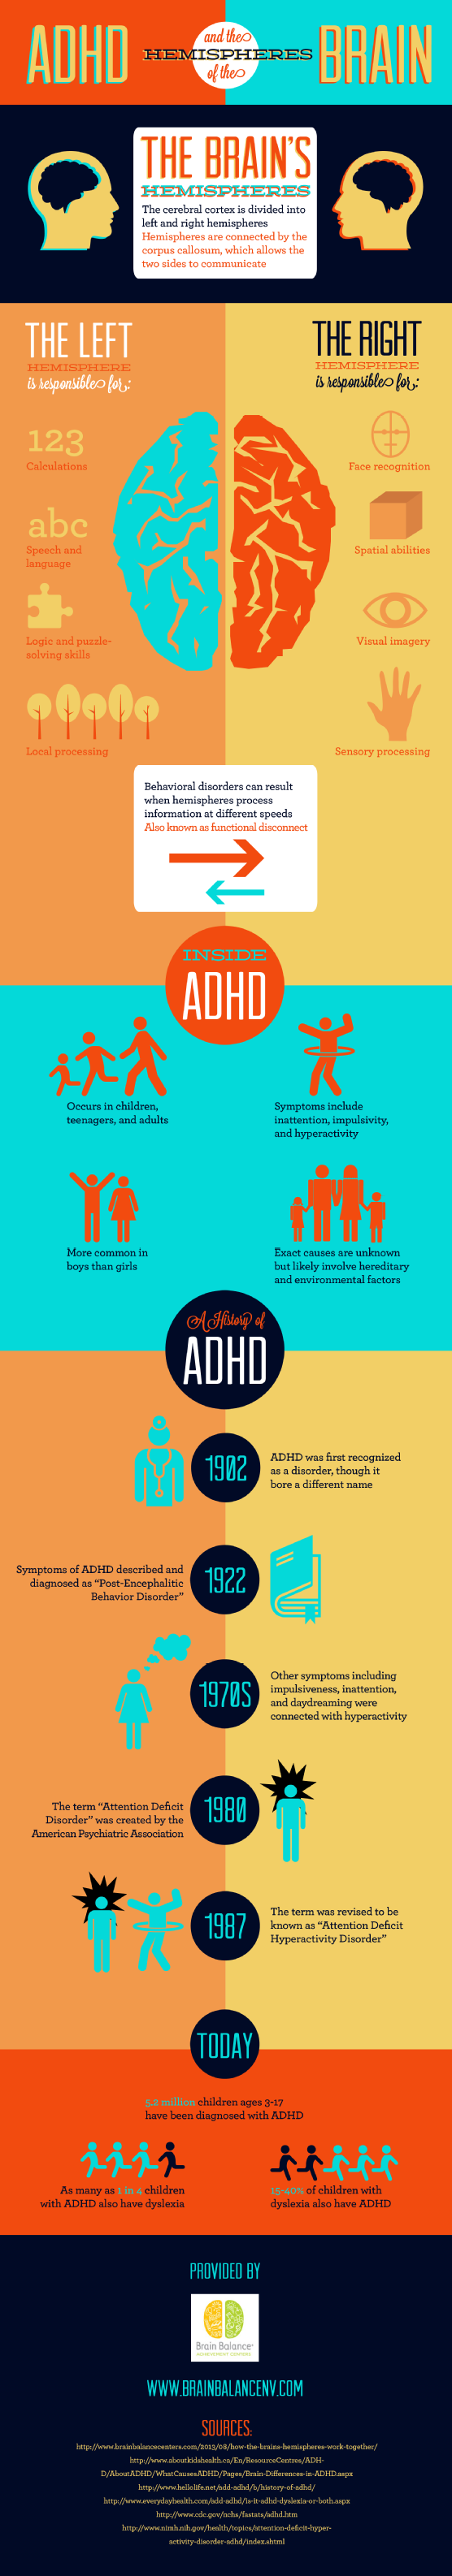 ADHD and the hemispheres of the brain